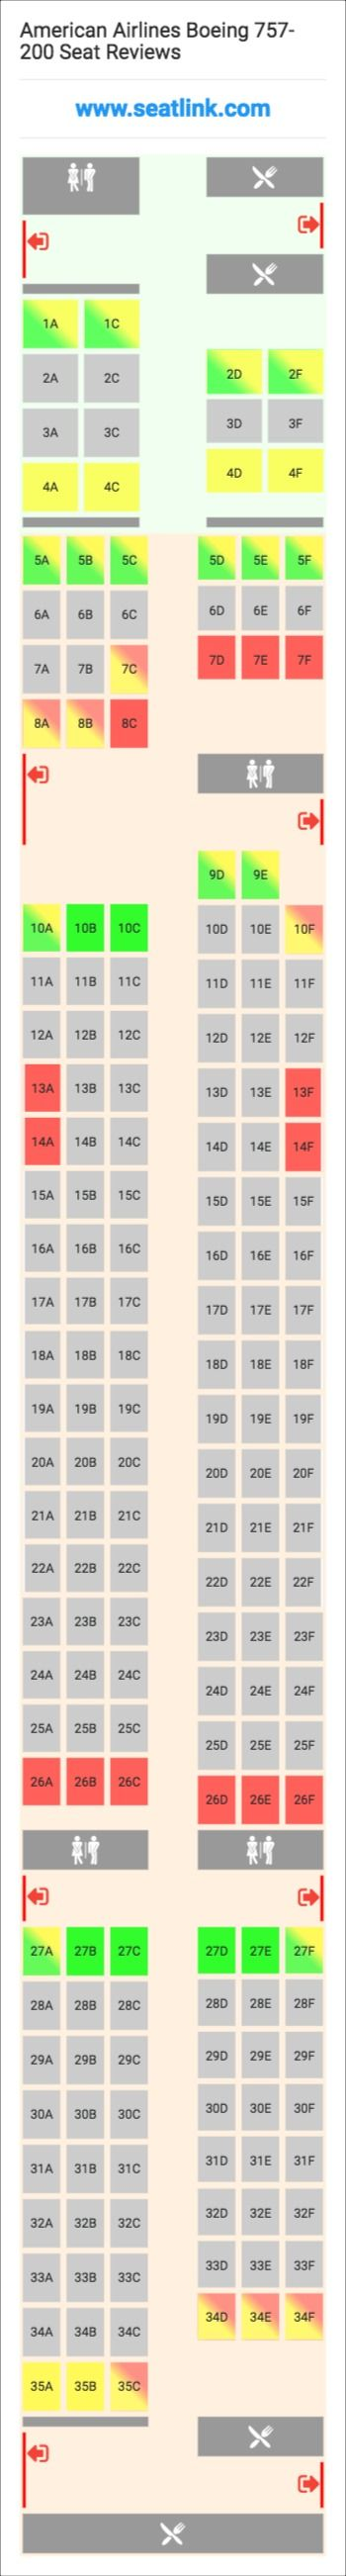 American Airlines Boeing 757-200 (752) Seat Map | Delta ...